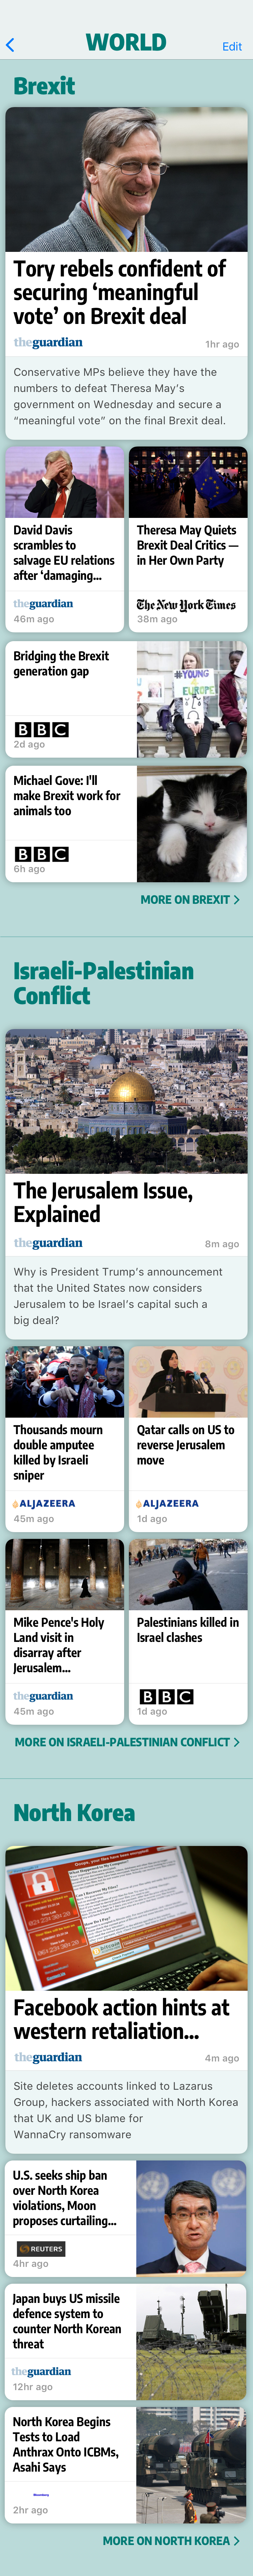 Screenshot: A page of world news